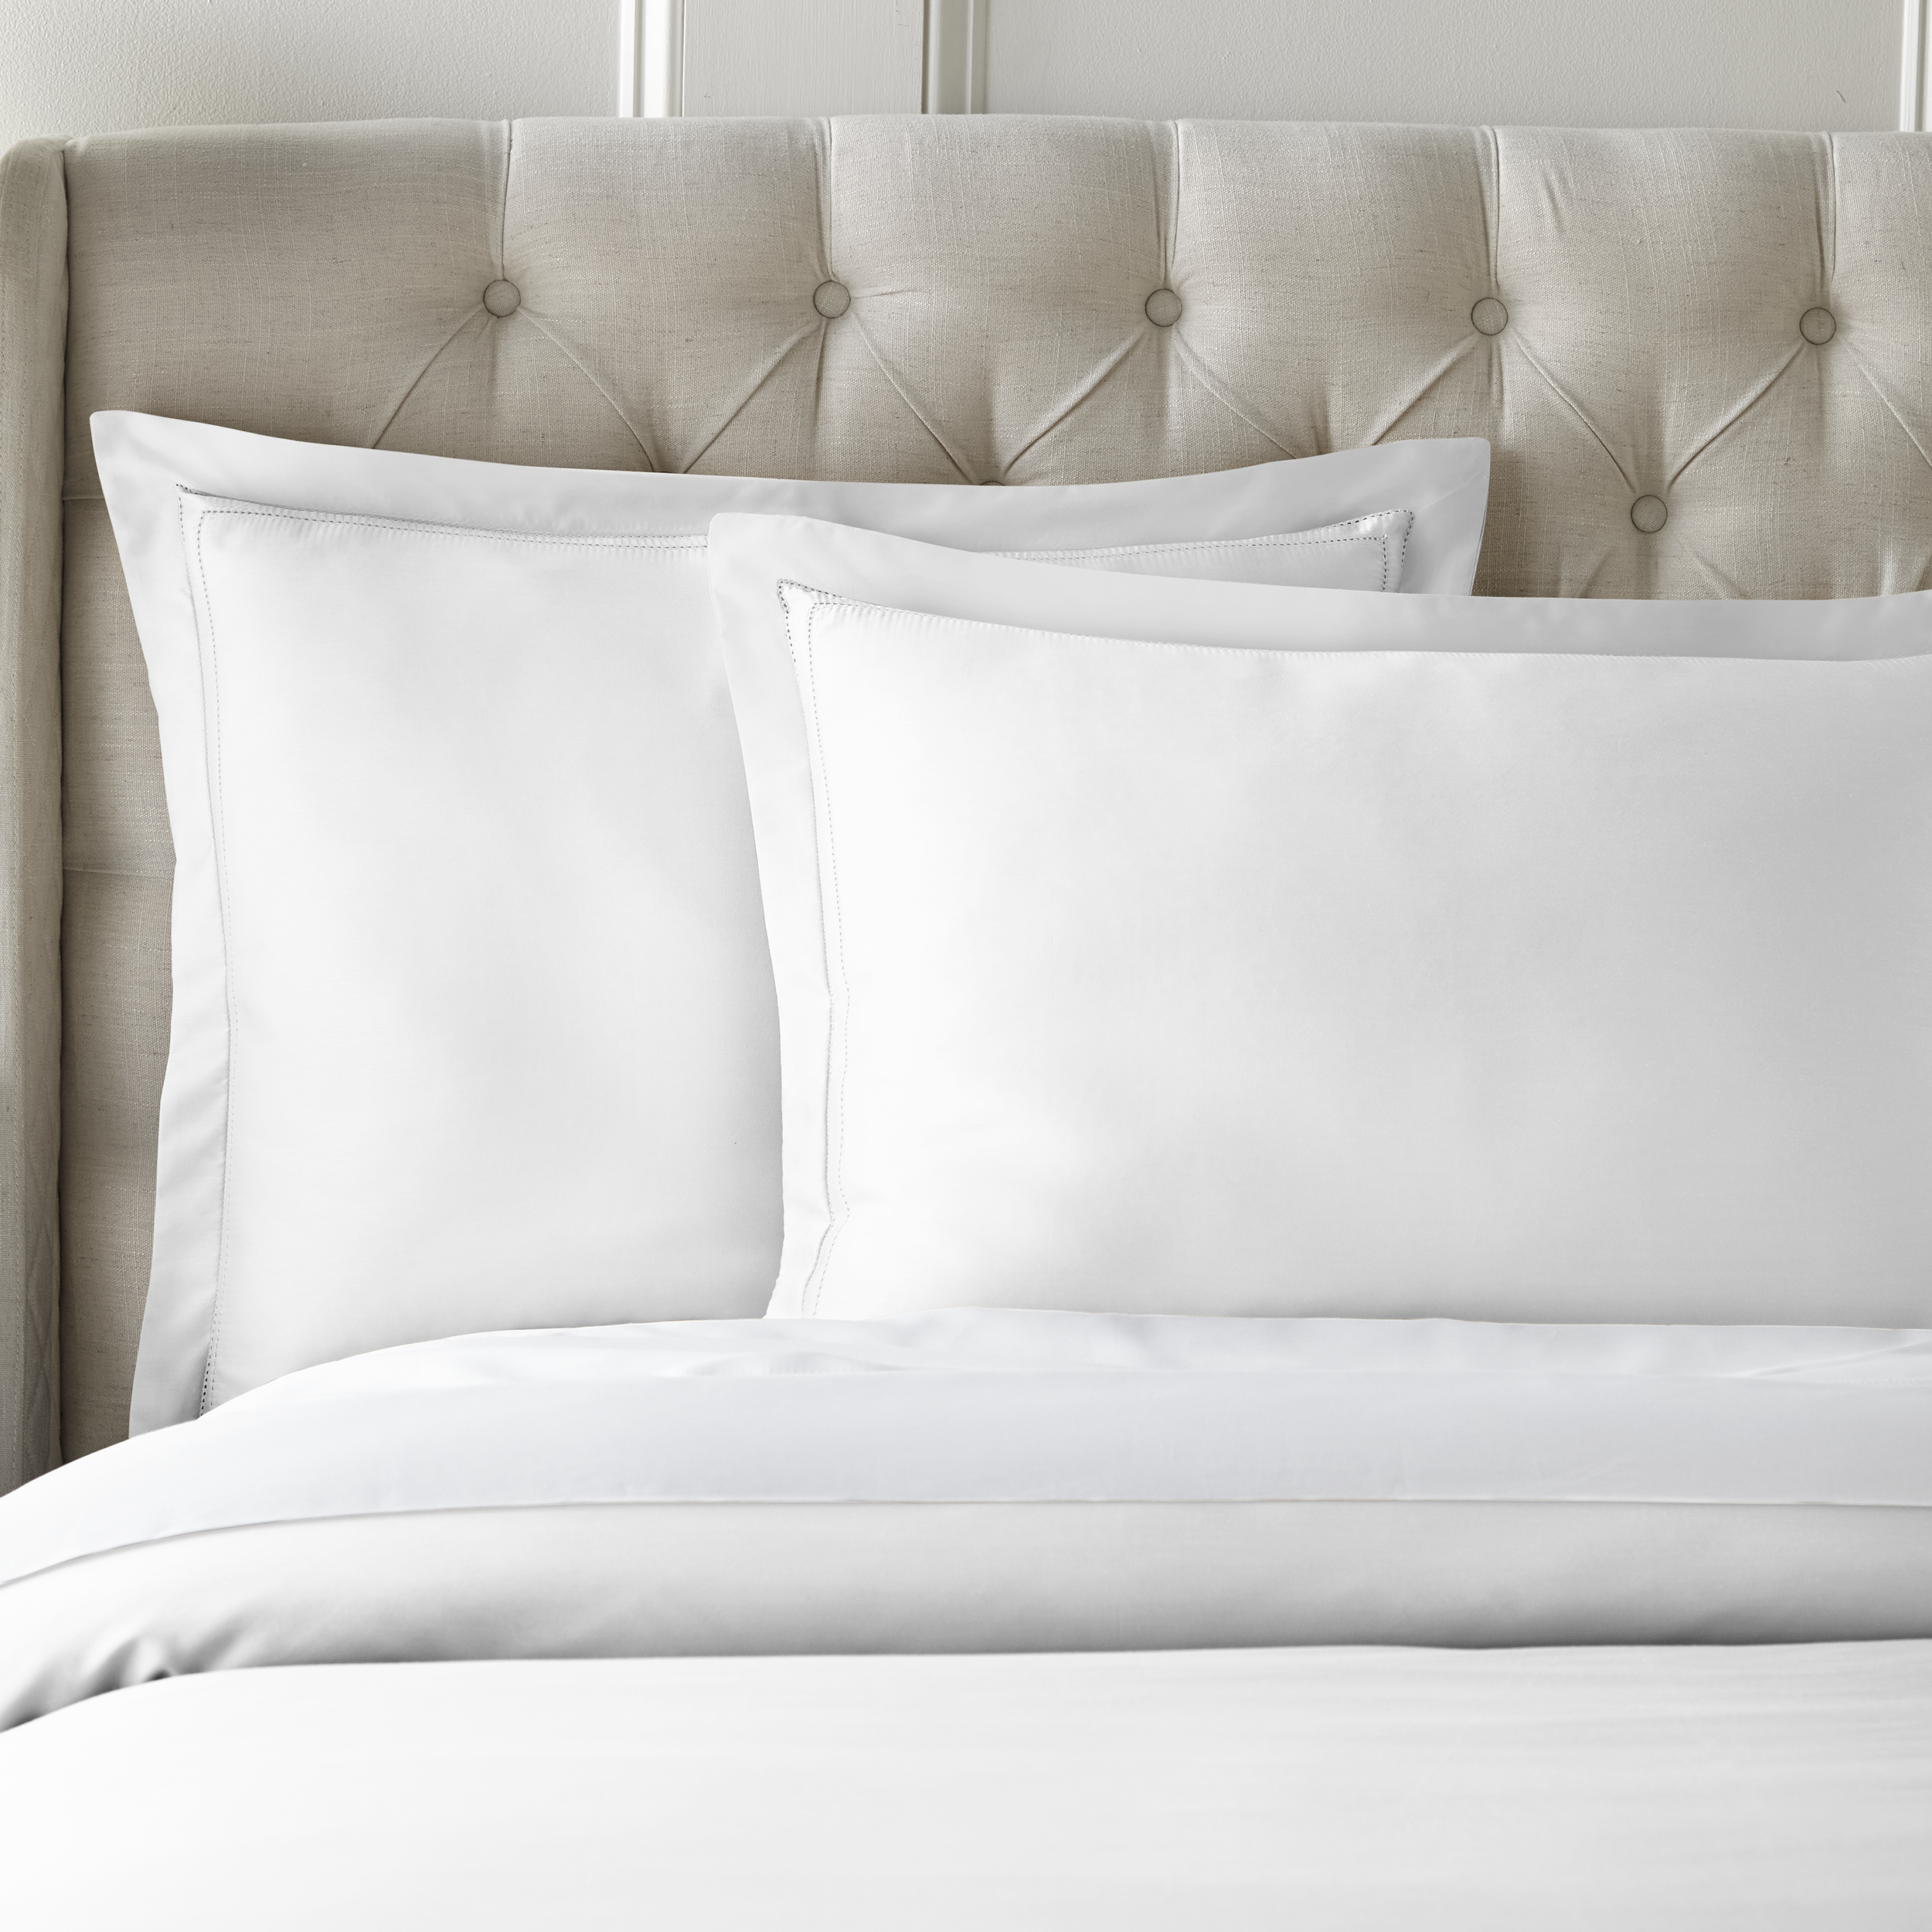 Egyptian Cotton Is Great For All Skin Types Especially Sensitive